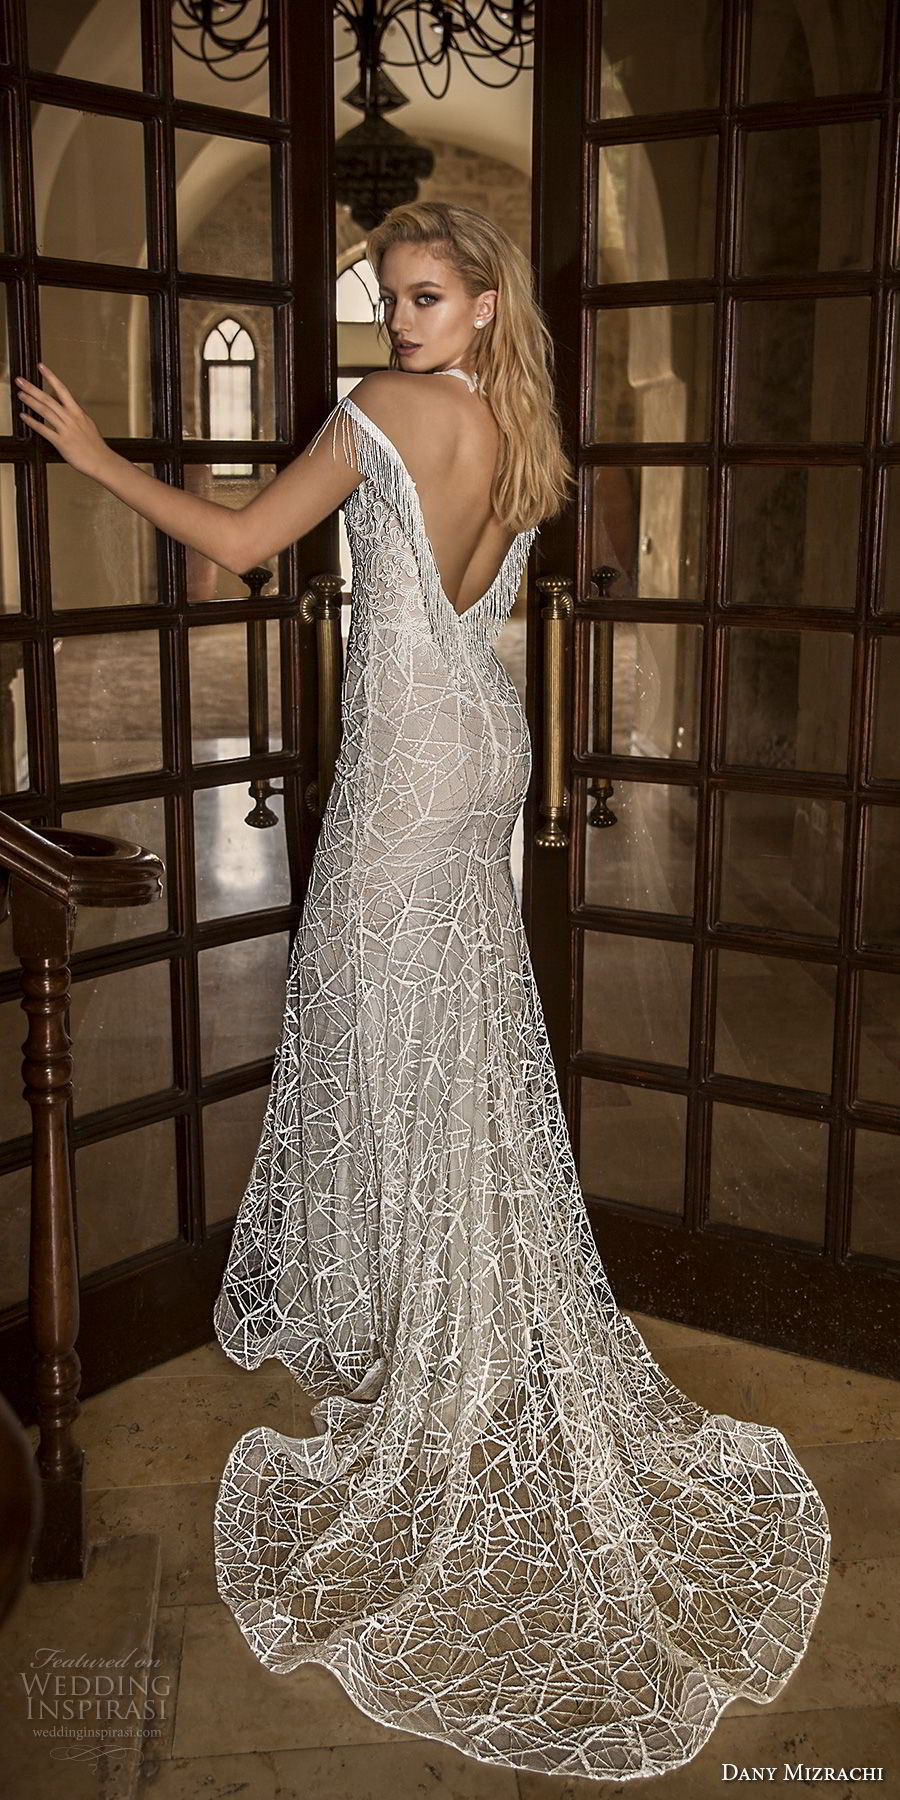 dany mizrachi spring 2018 bridal off the shoulder deep plunging v neck full embellishment elegant fit and flare wedding dress open v back chapel train (24) bv